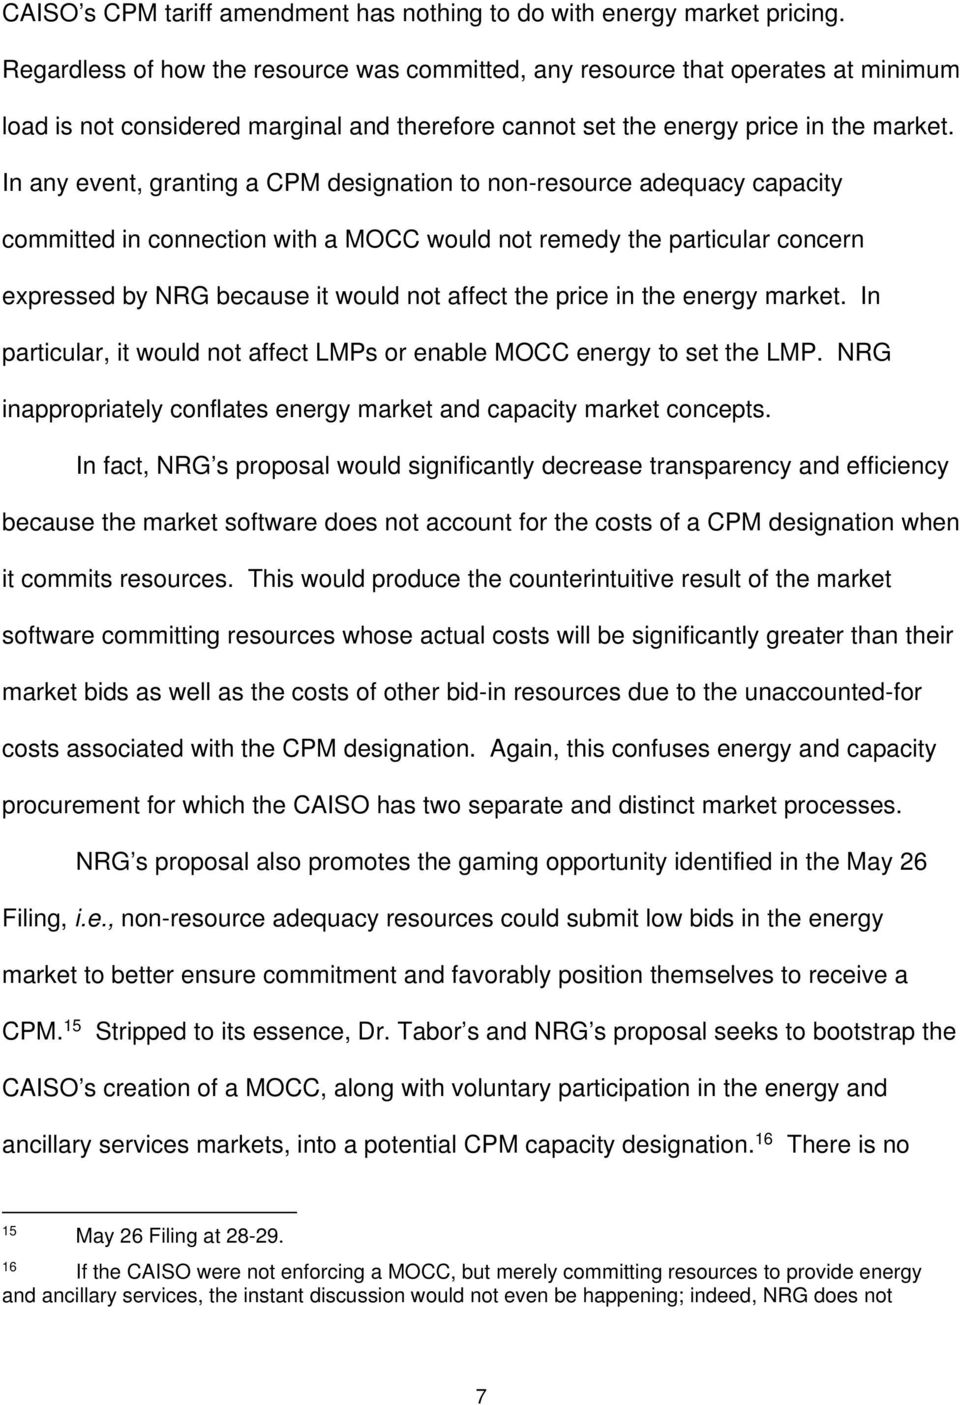 In any event, granting a CPM designation to non-resource adequacy capacity committed in connection with a MOCC would not remedy the particular concern expressed by NRG because it would not affect the